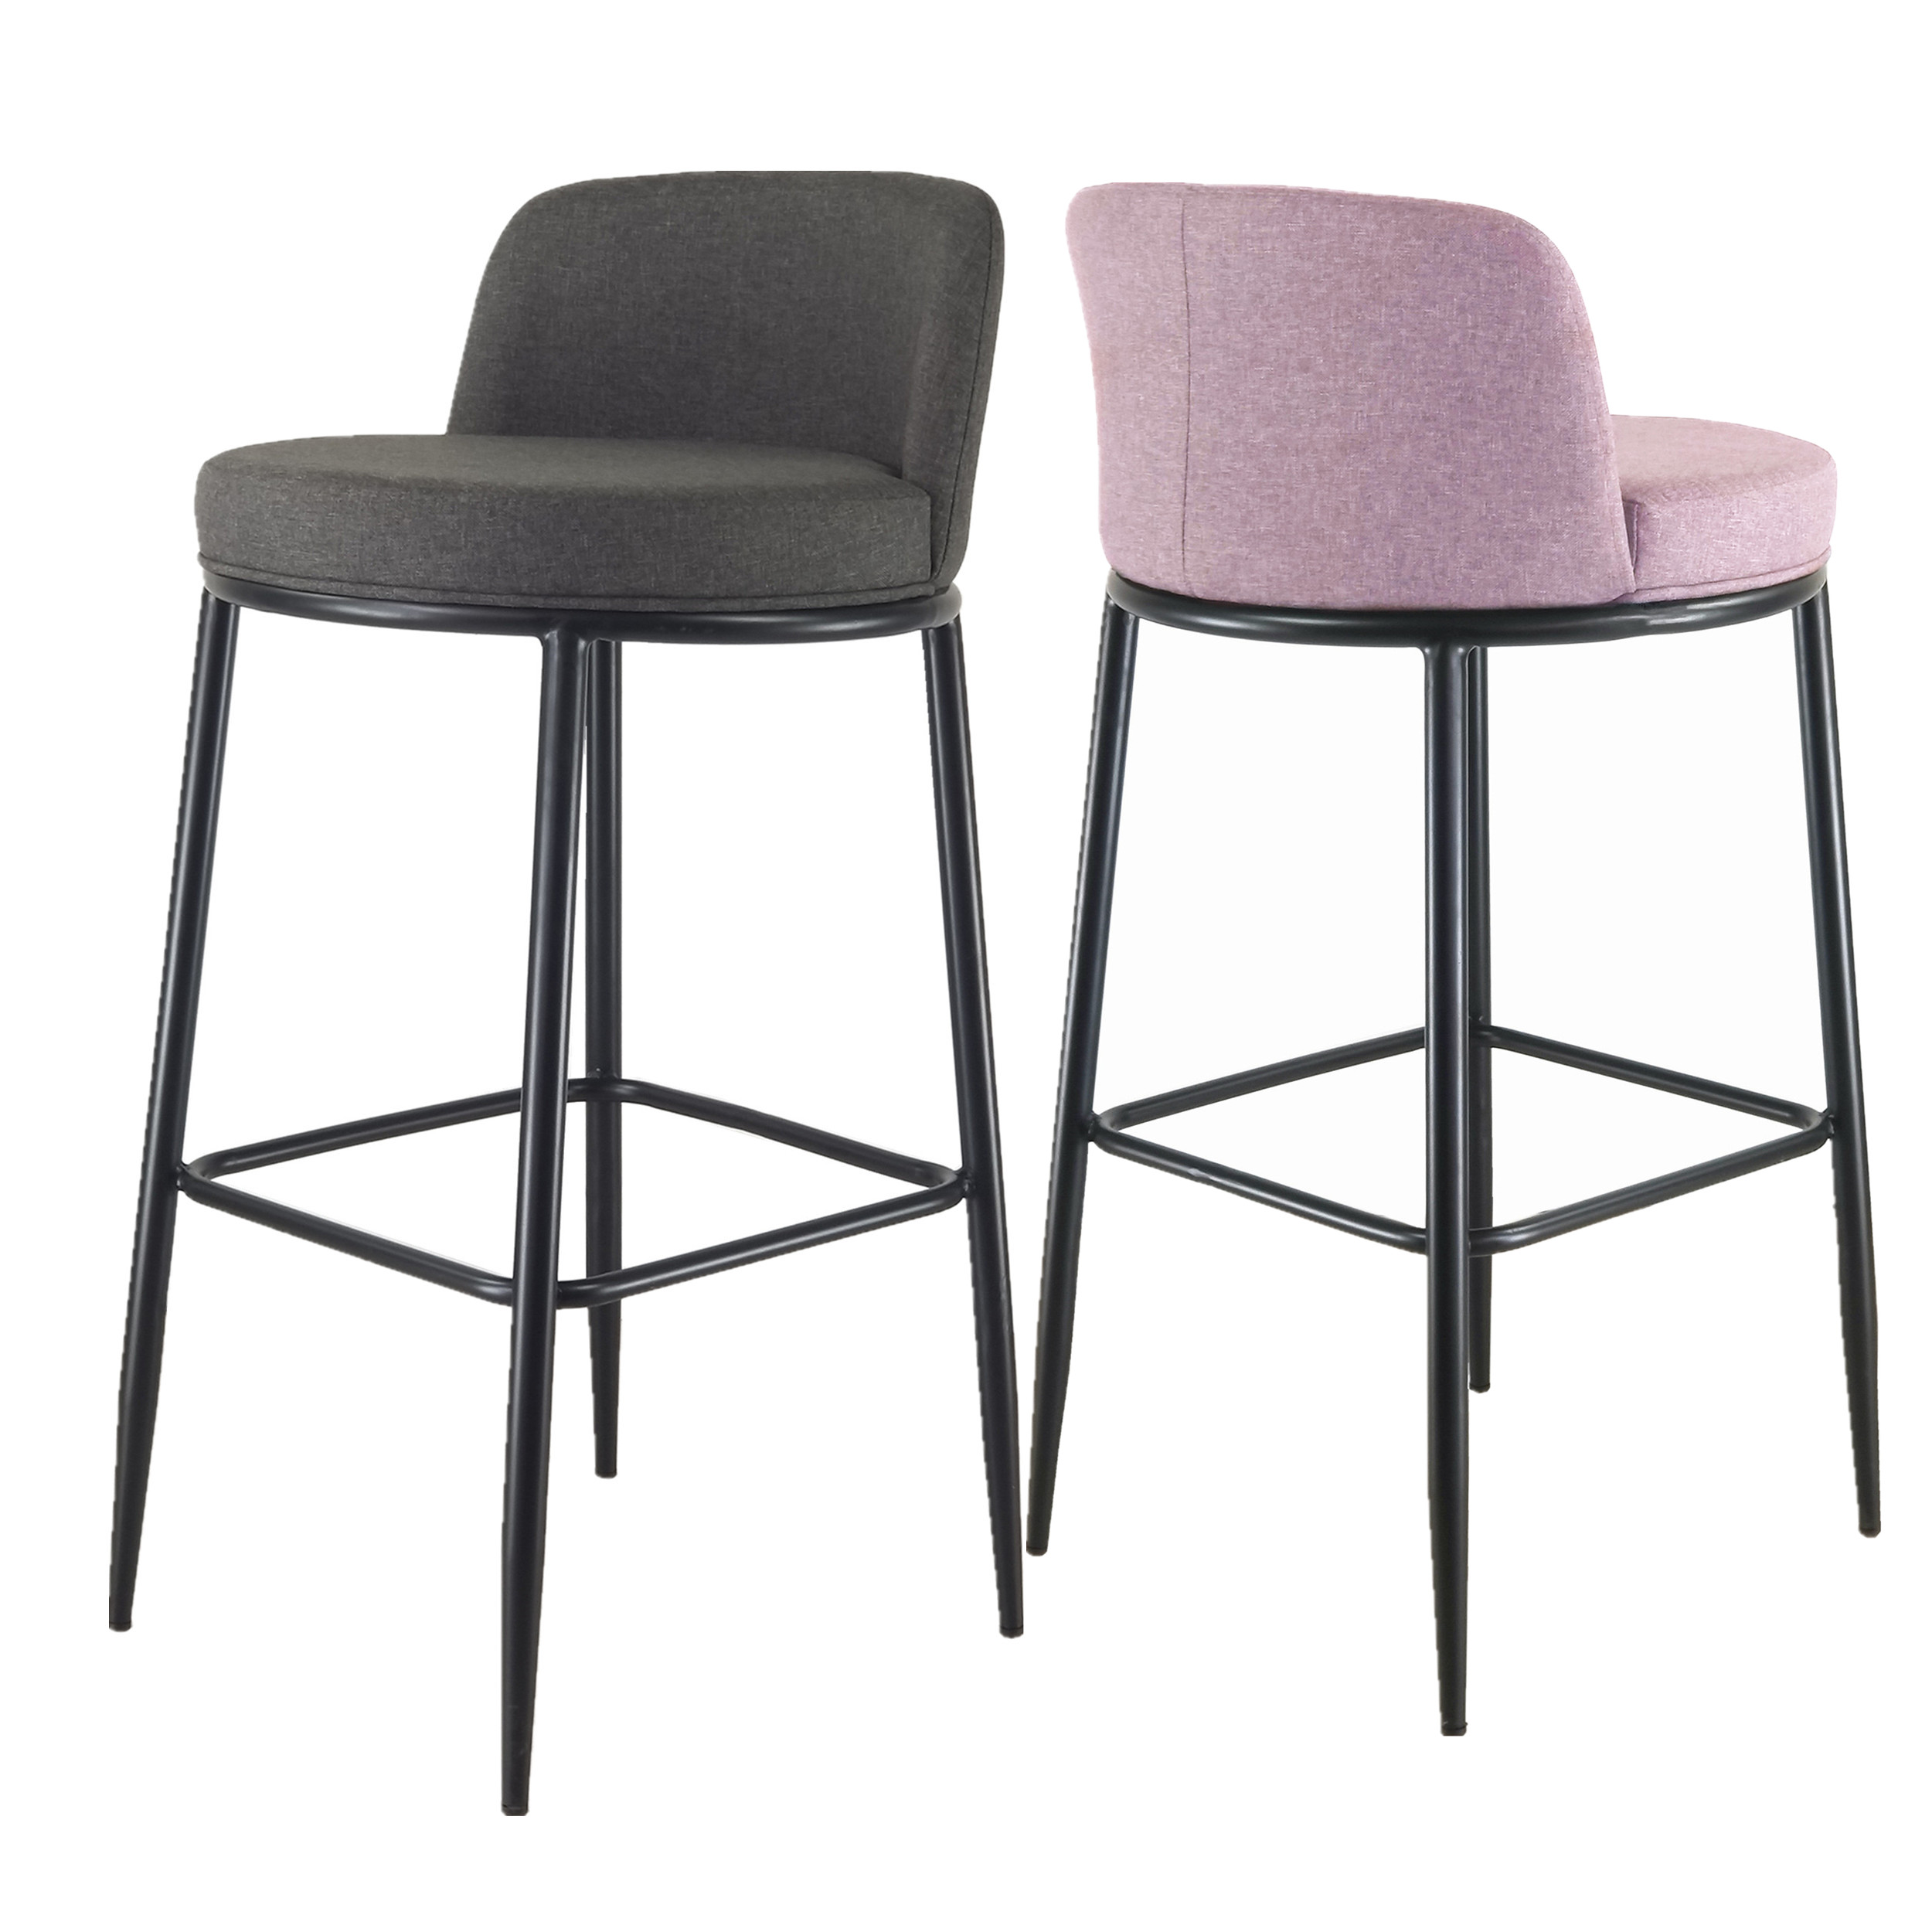 Top Sale Hotel Furniture Restaurant Metal Frame Bar Stool Chair   Buy  Kitchen High Chair,Metal Bar Stool Legs,Bar Table And Chair Used Product on  ...